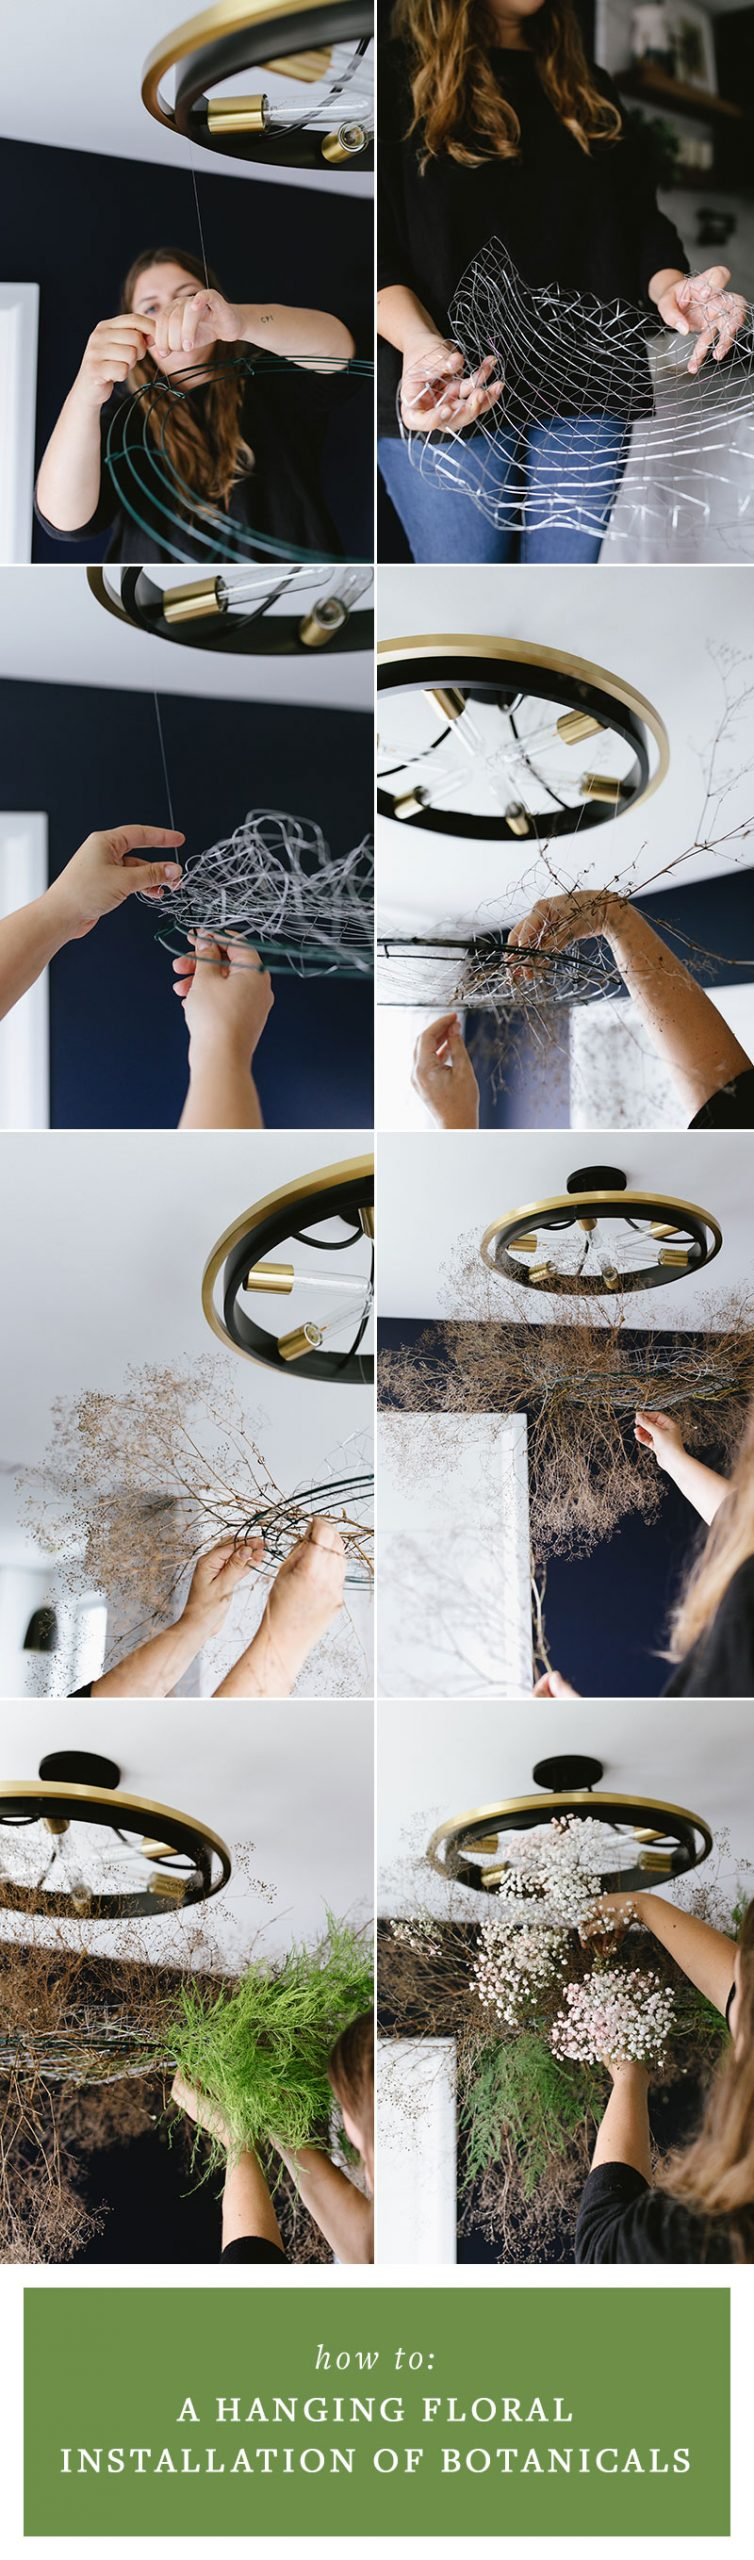 How to Create a Hanging Floral Installation with Dried Botanicals, the perfect modern centerpiece alternative to WOW Your Next Dinner Guests this fall, Halloween, and Thanksgiving. #DIY #tutorial #floralinstallation #hanginginstallation #hangingflorals #centerpiece #halloween #babysbreath #ferns #botanicals #driedflowers